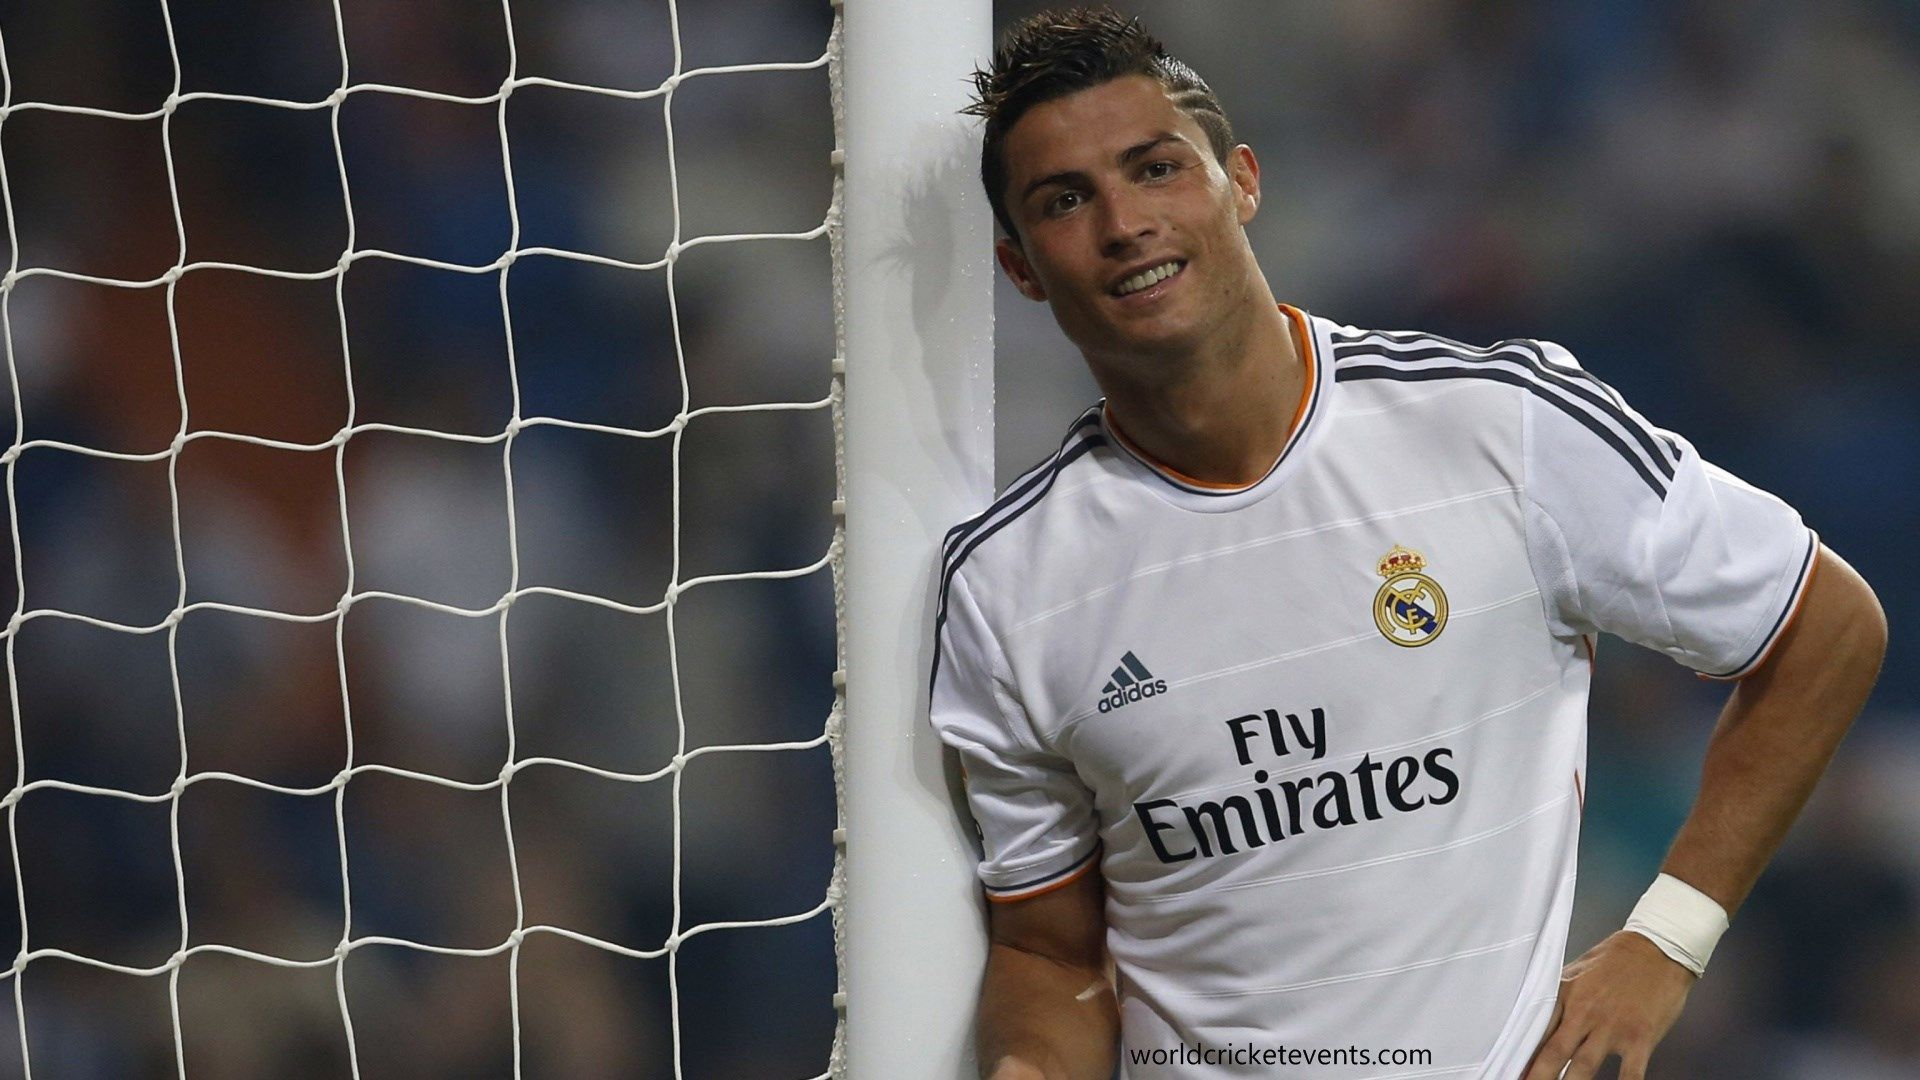 Cristiano ronaldo in a match cr7 hd images pinterest cristiano ronaldo in a match voltagebd Image collections